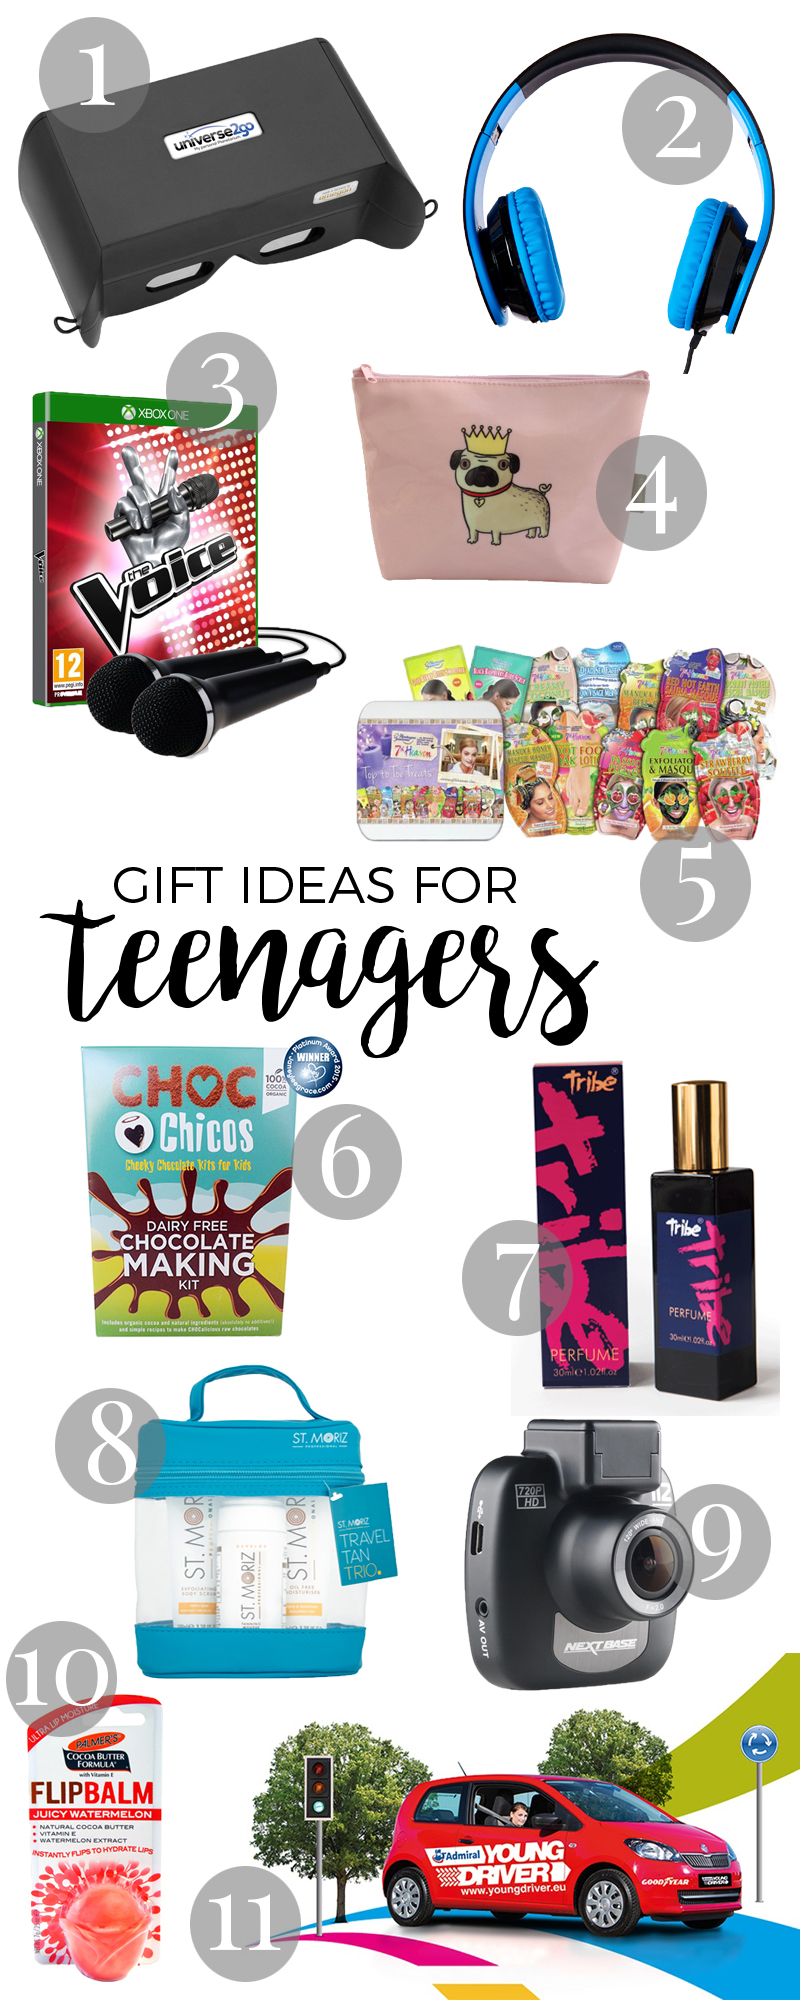 gift-ideas-for-teenagers-1